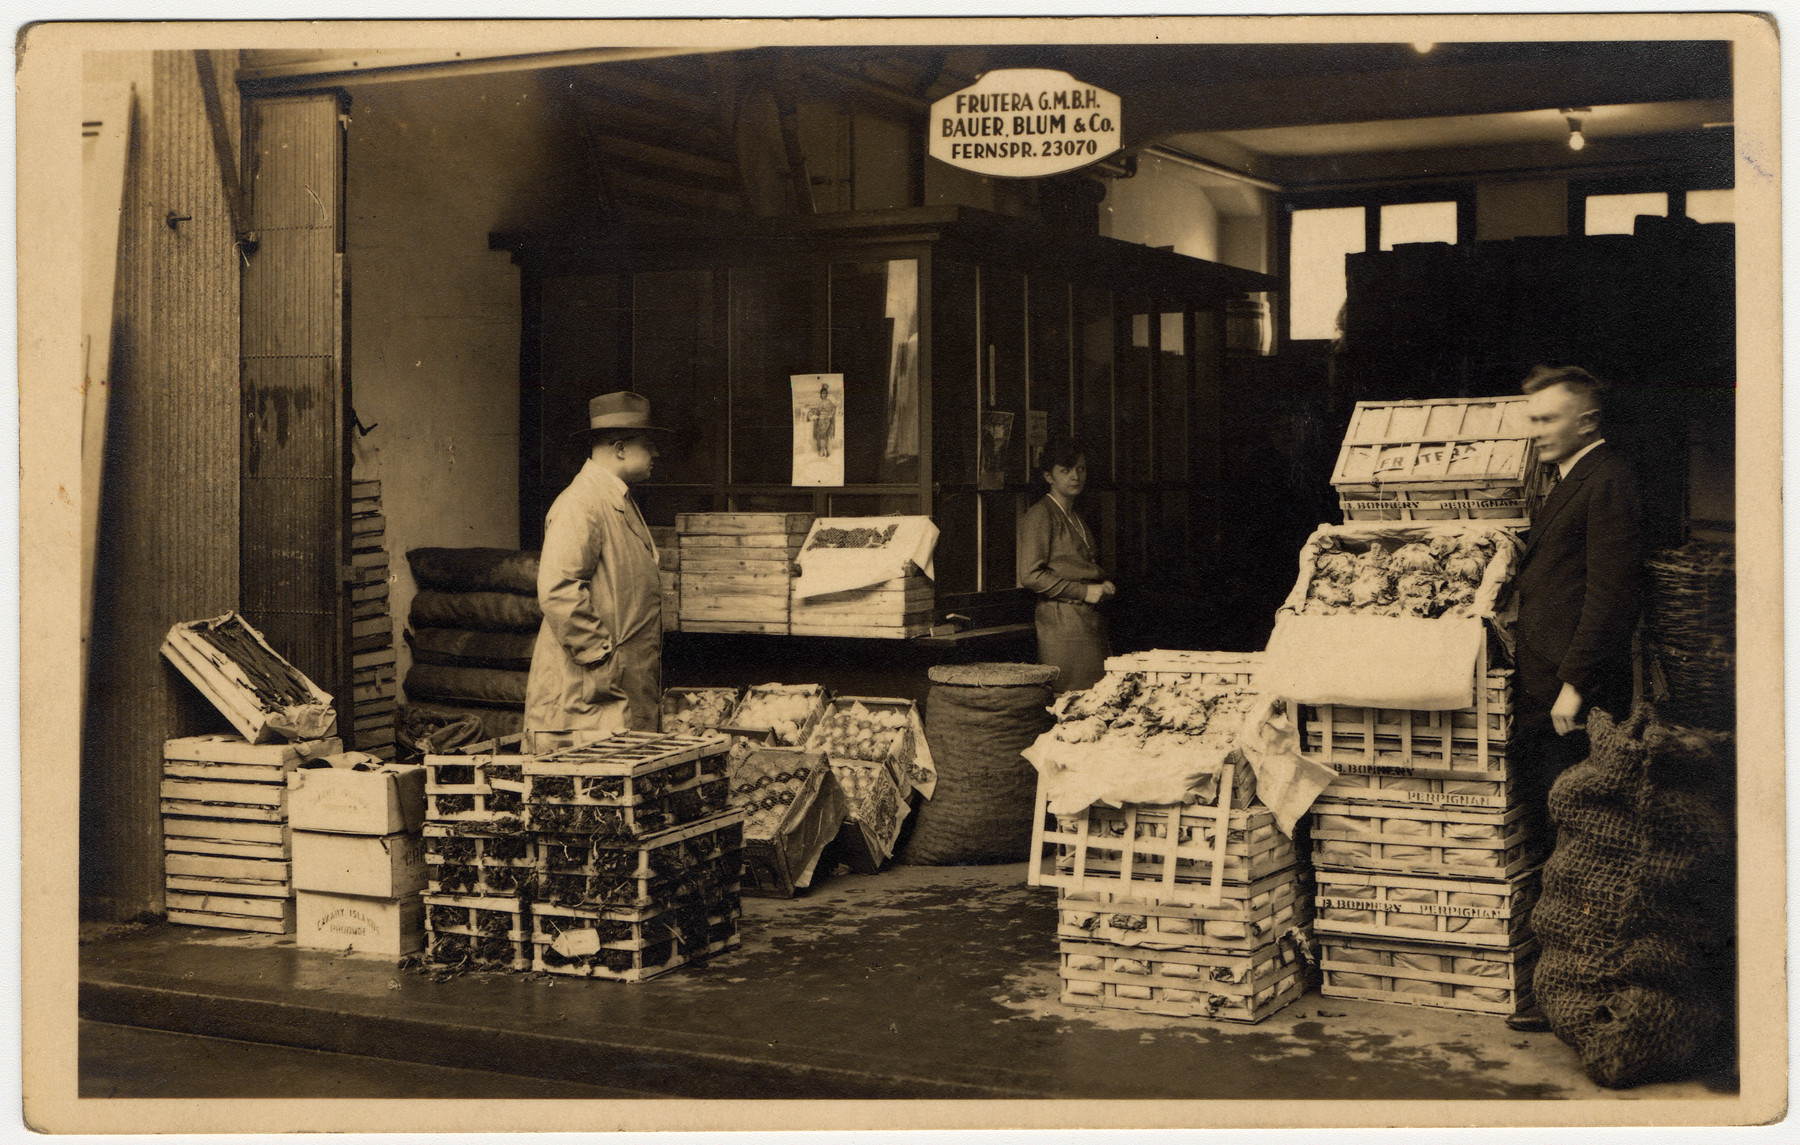 Two men and a woman work instide the Bauer, Blum and Co. Frutera amid crates of fruit and vegetables.